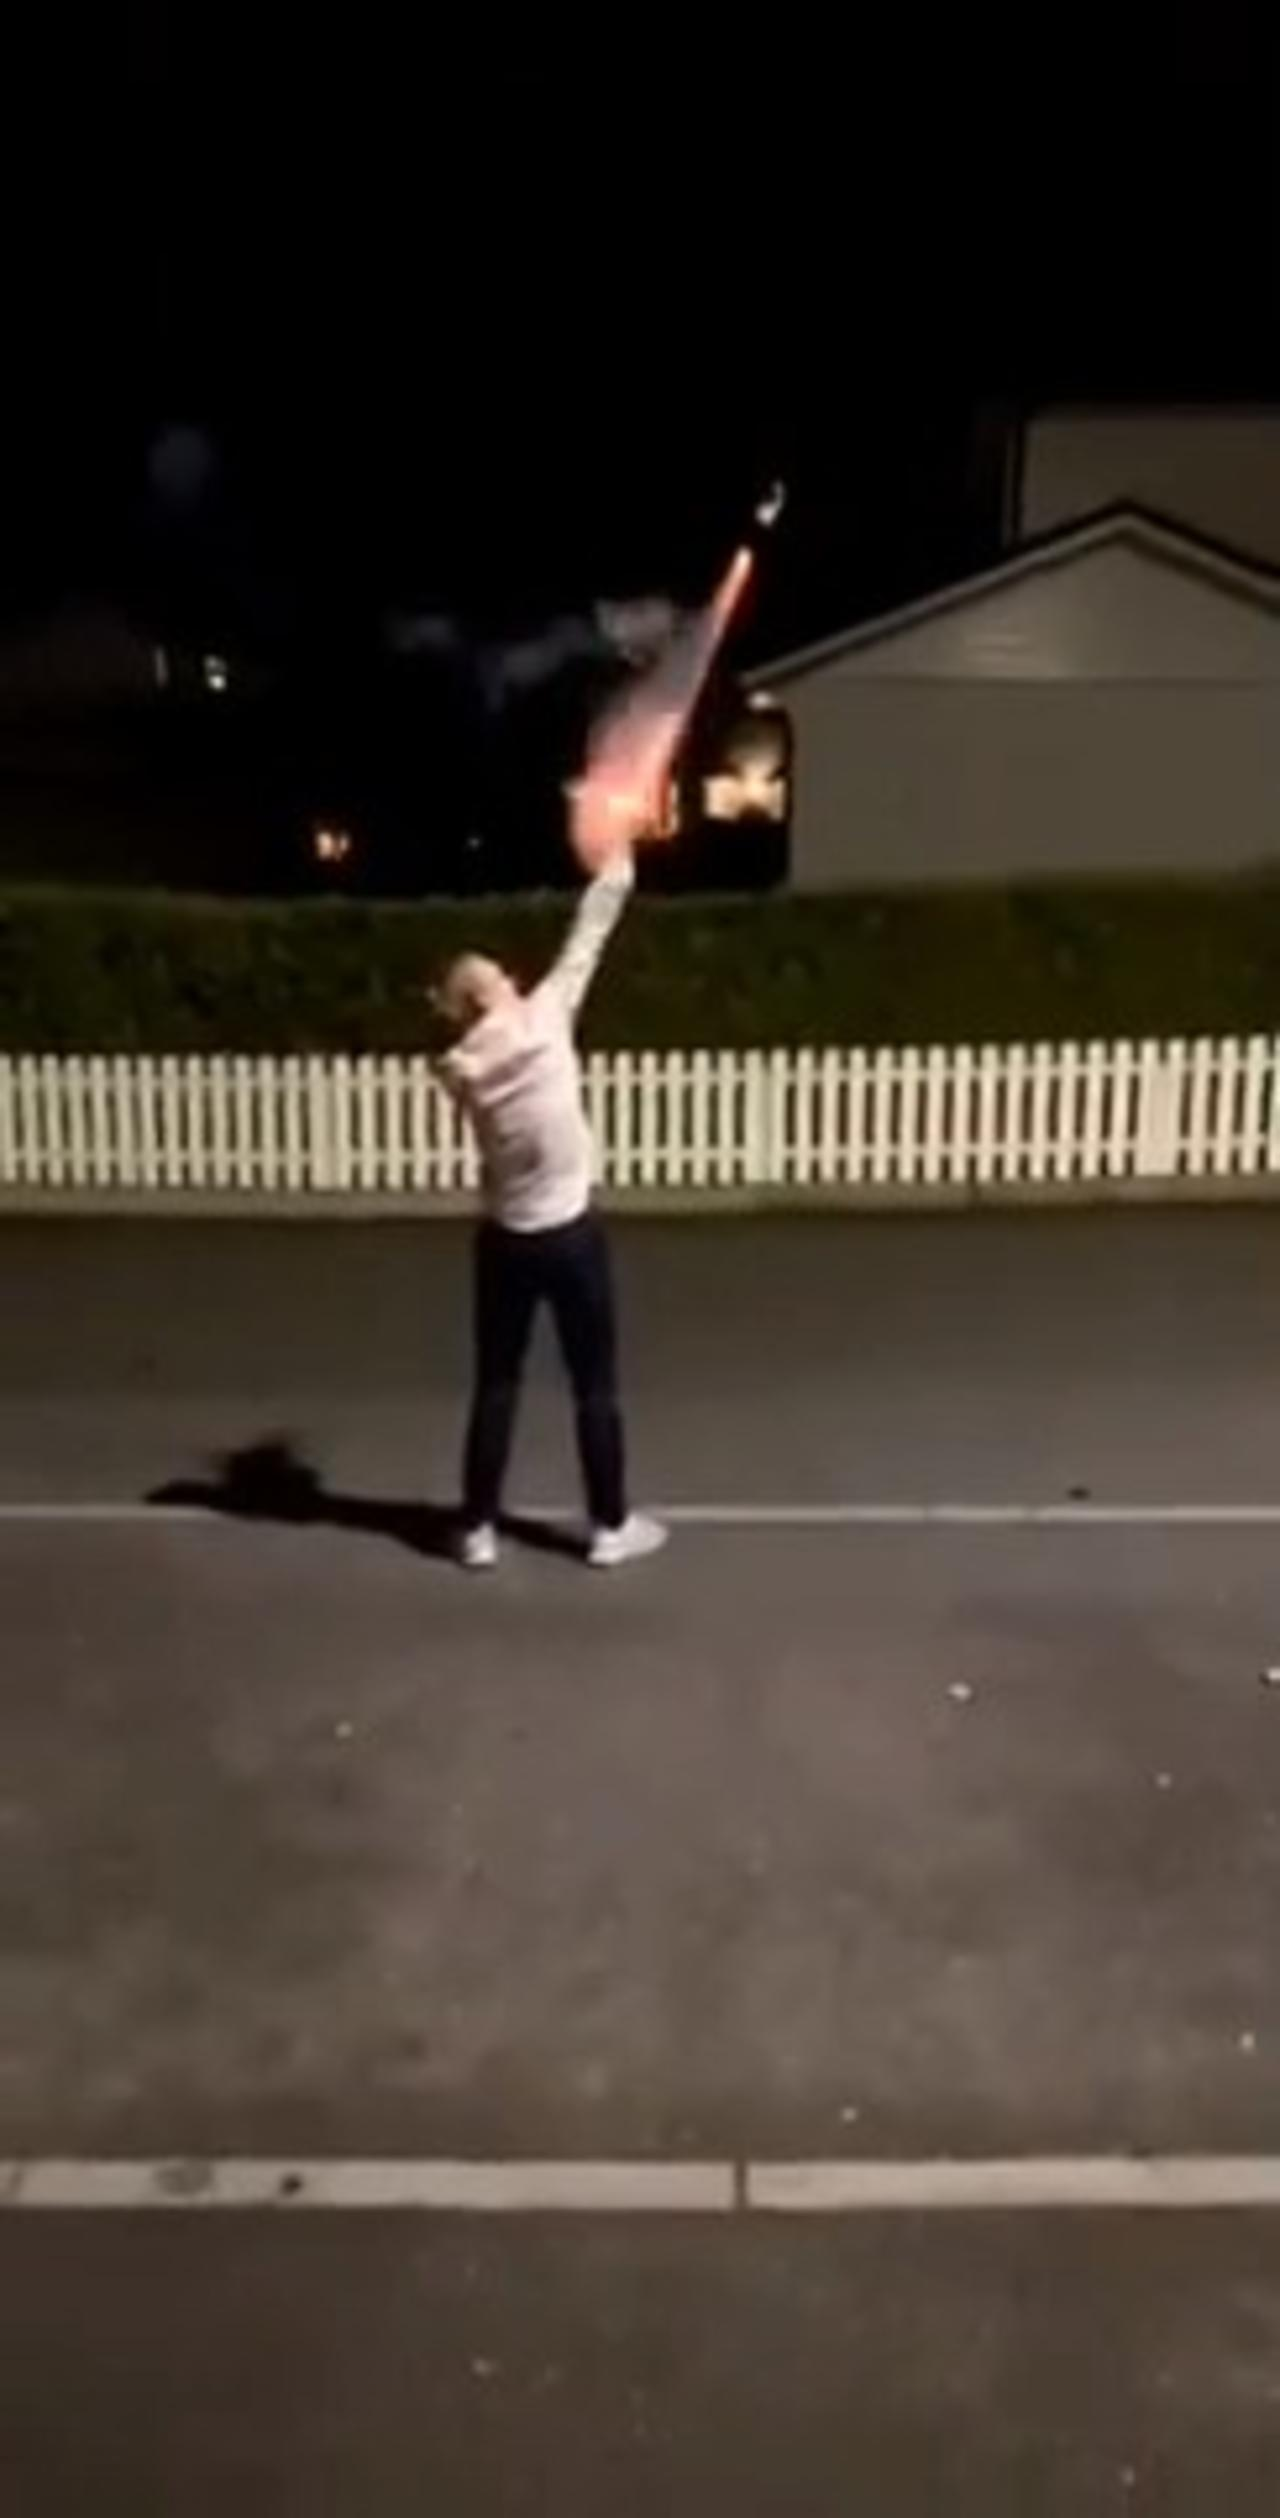 Fire Hits Guy's Face While He Tries to Light Fireworks in His Hand